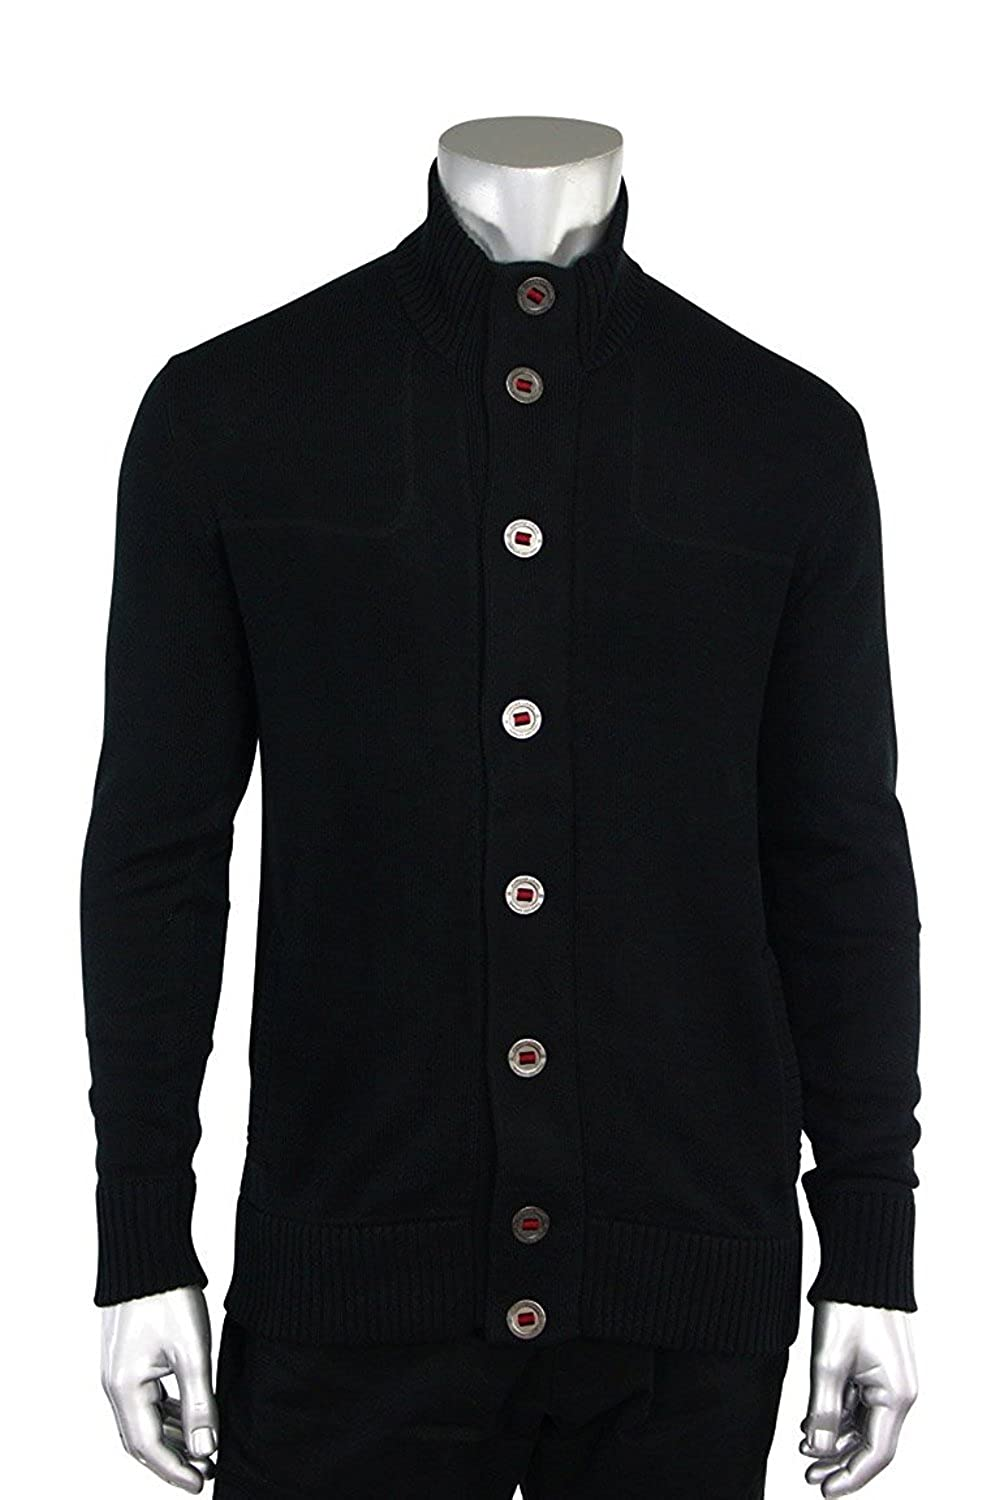 Jordan Craig Mock Neck Cardigan Sweater